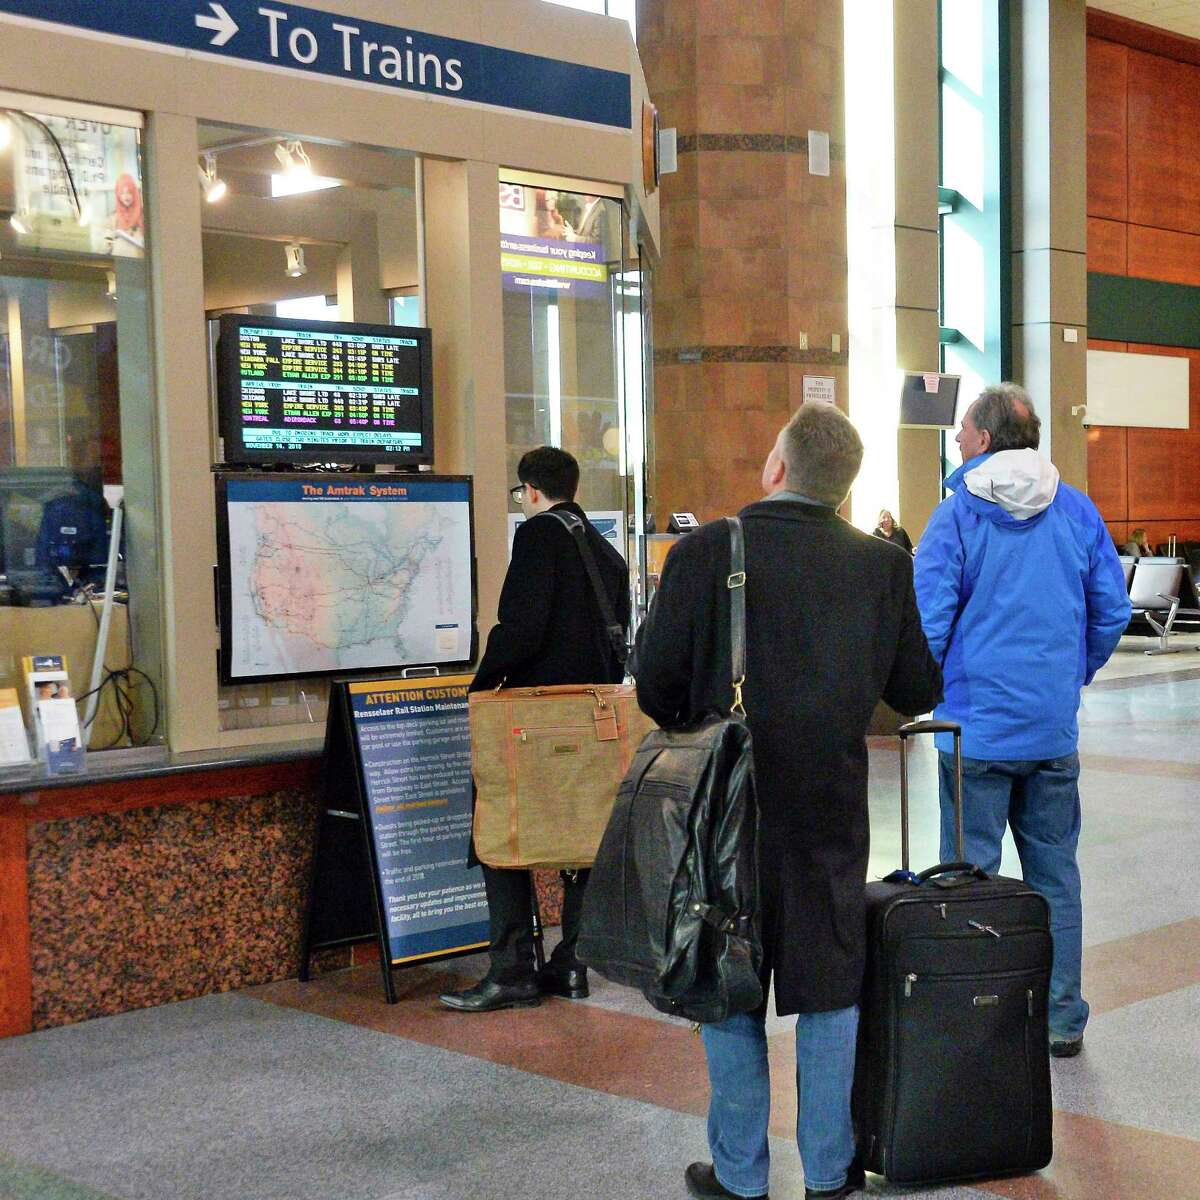 Travelers check a departure/arrival board at the Amtrak station Wednesday Nov. 14, 2018 in Rensselaer, NY. (John Carl D'Annibale/Times Union)